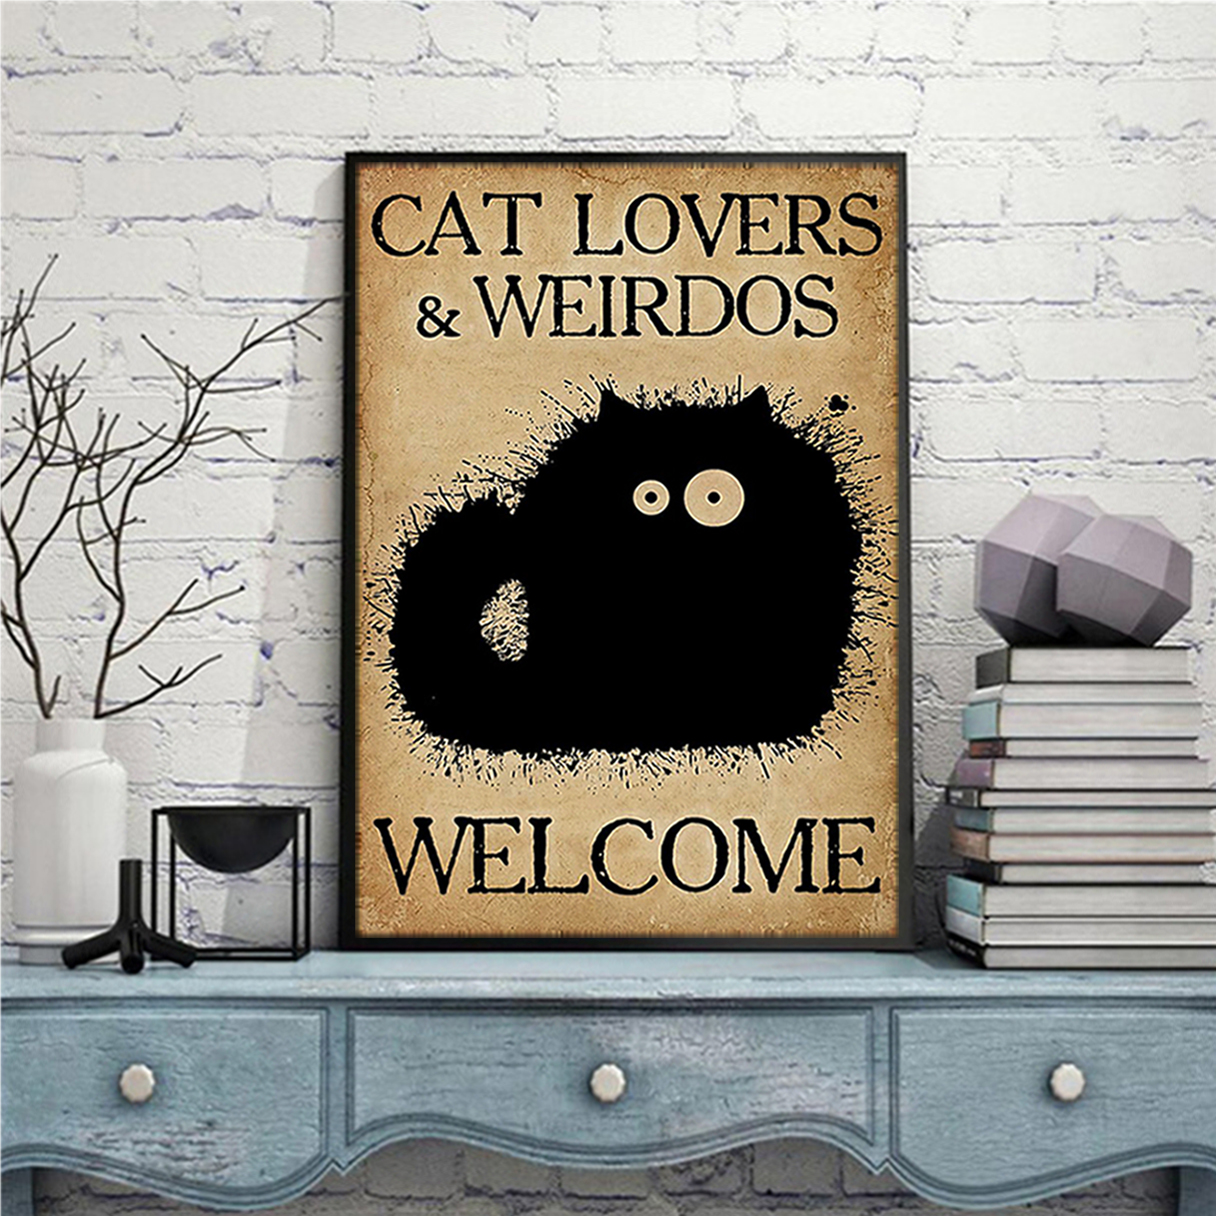 Cat lovers and weirdos welcome poster A2